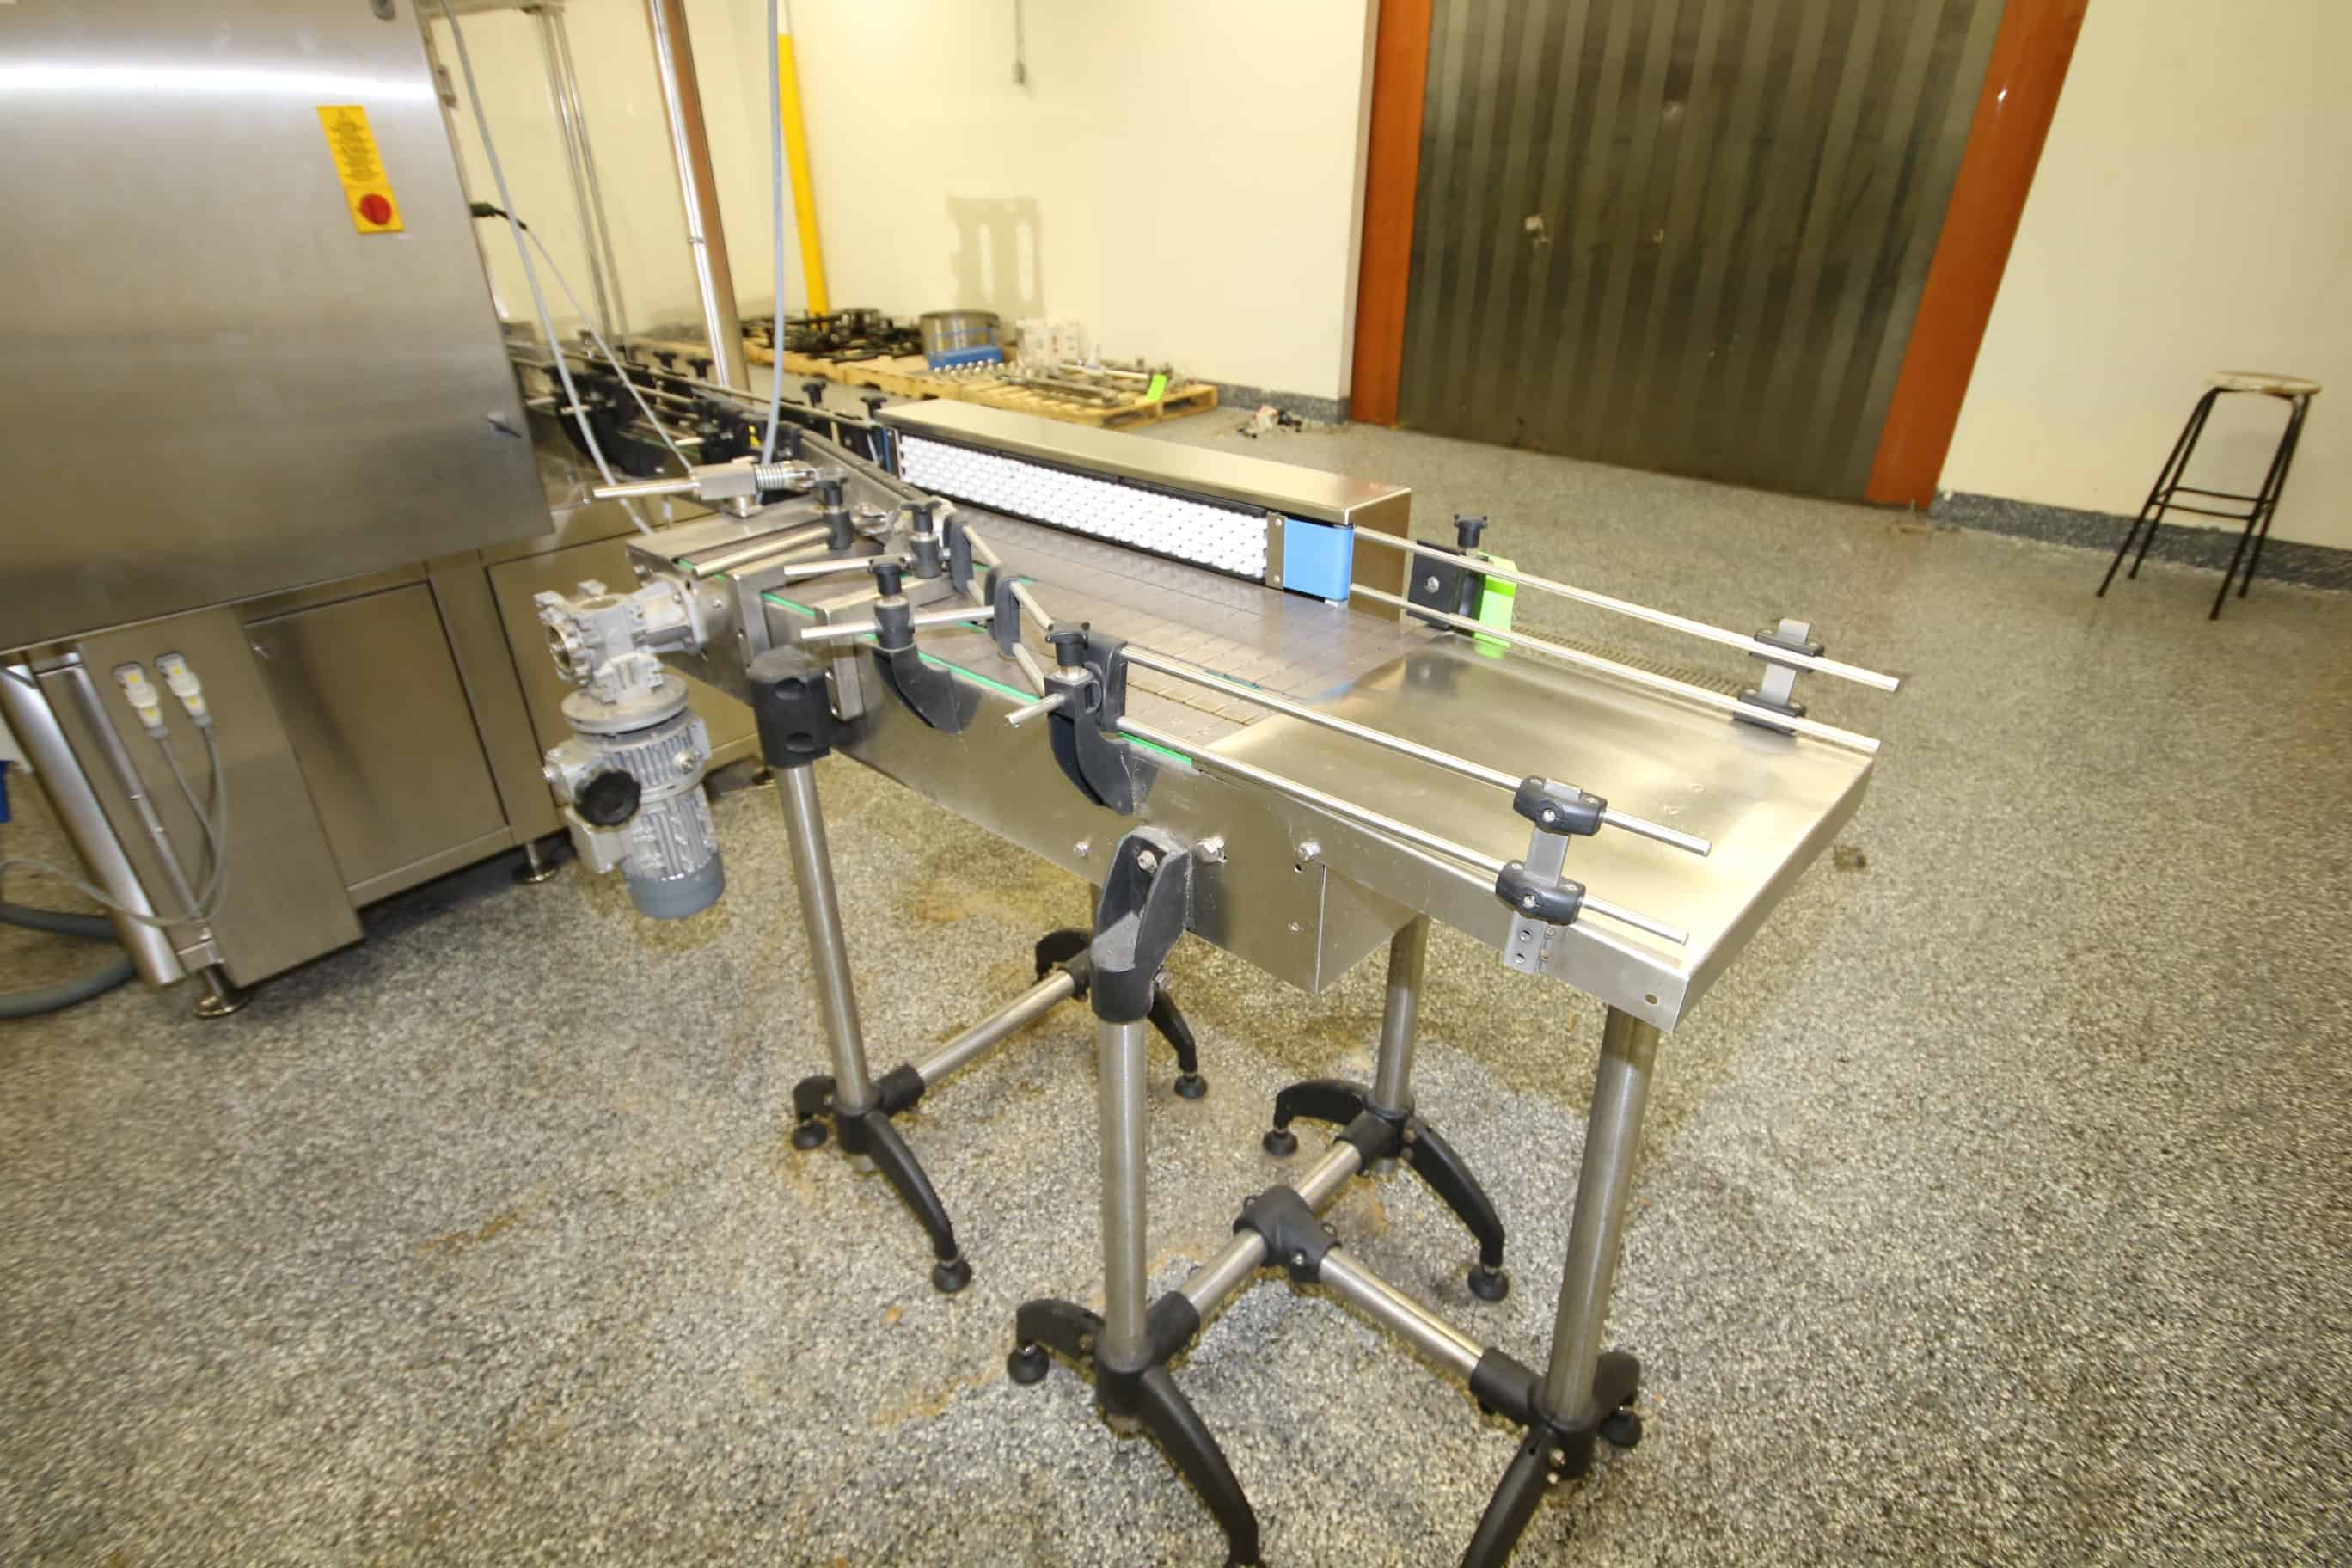 "S/S Descrambling/Infeed Table, with (4) Lanes of Conveyor Chain, and Diverter Arm, Overall Dims.: Aprox. 62"" L x 33"" W x 44"" H"